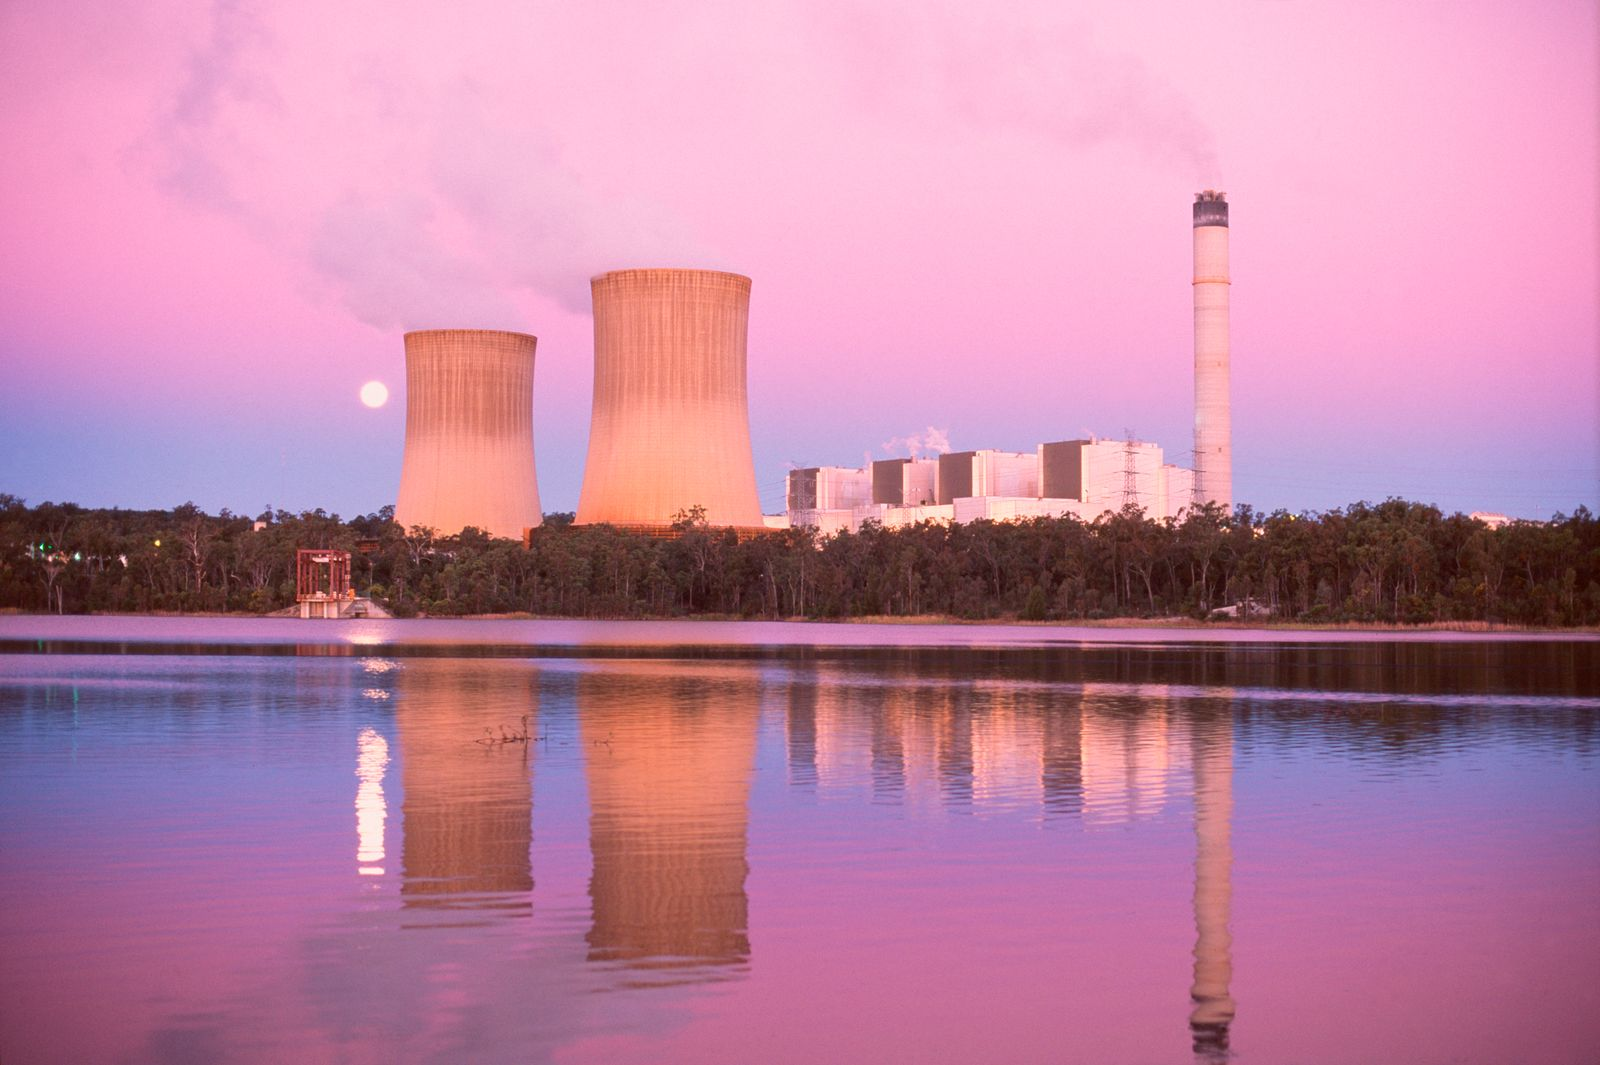 Water vapour and unseen oxides of carbon and other elements rise from a coal-fired power station, contributing to air pollution and greenhouse gases